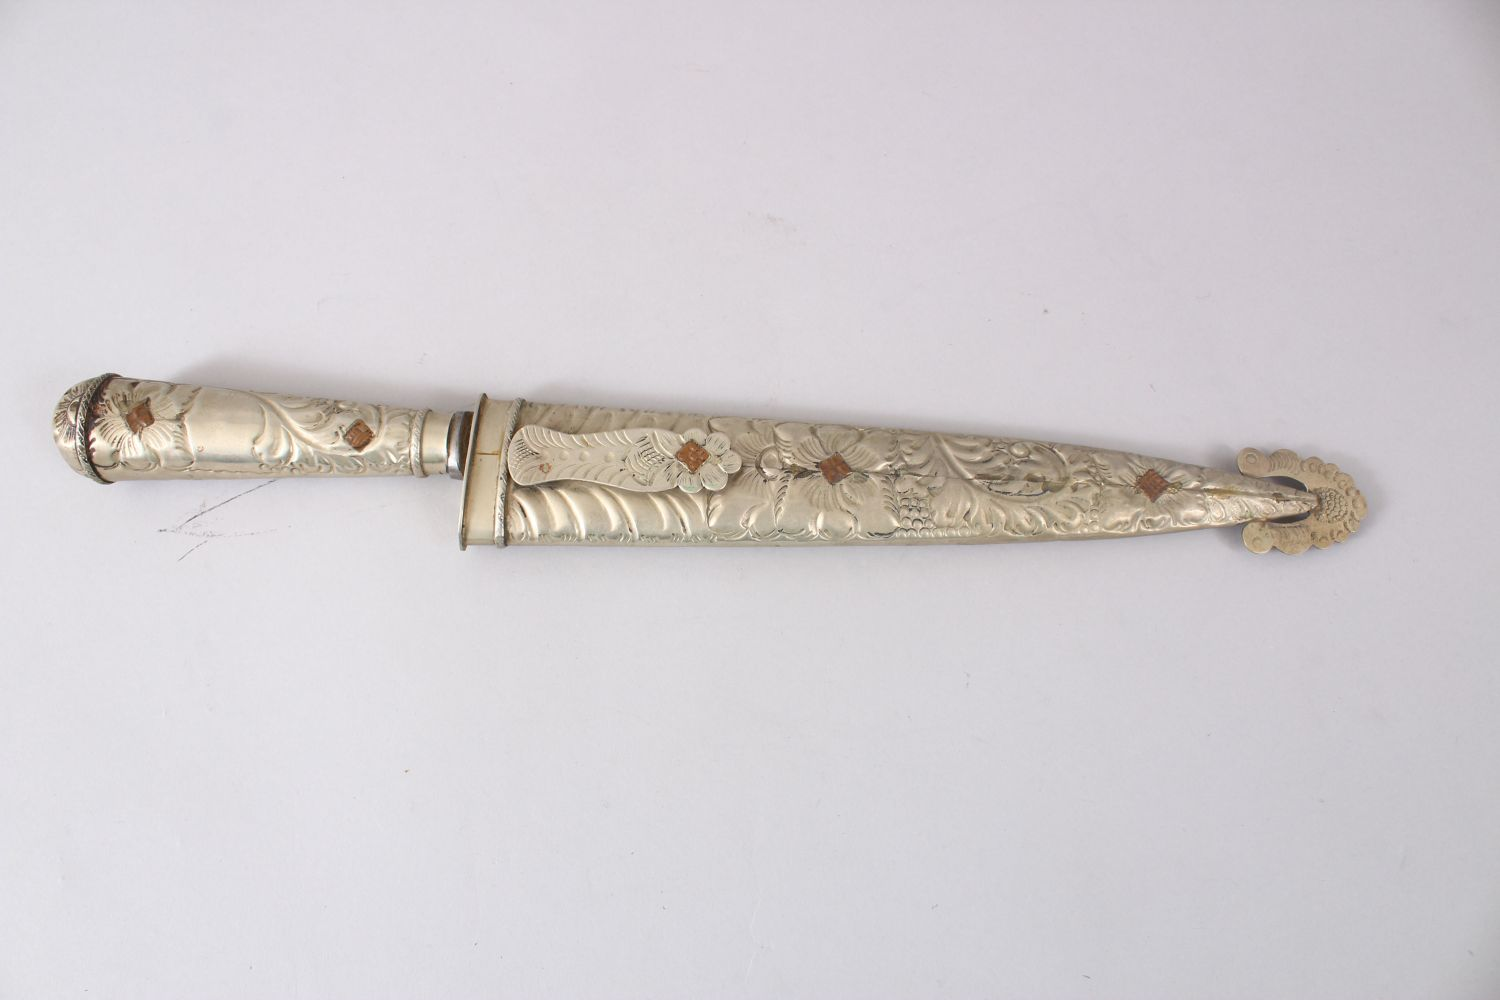 Lot 5 - A GOOD PERSIAN DAGGER, the sheath and handle formed from white metal in floral style, 42cm long